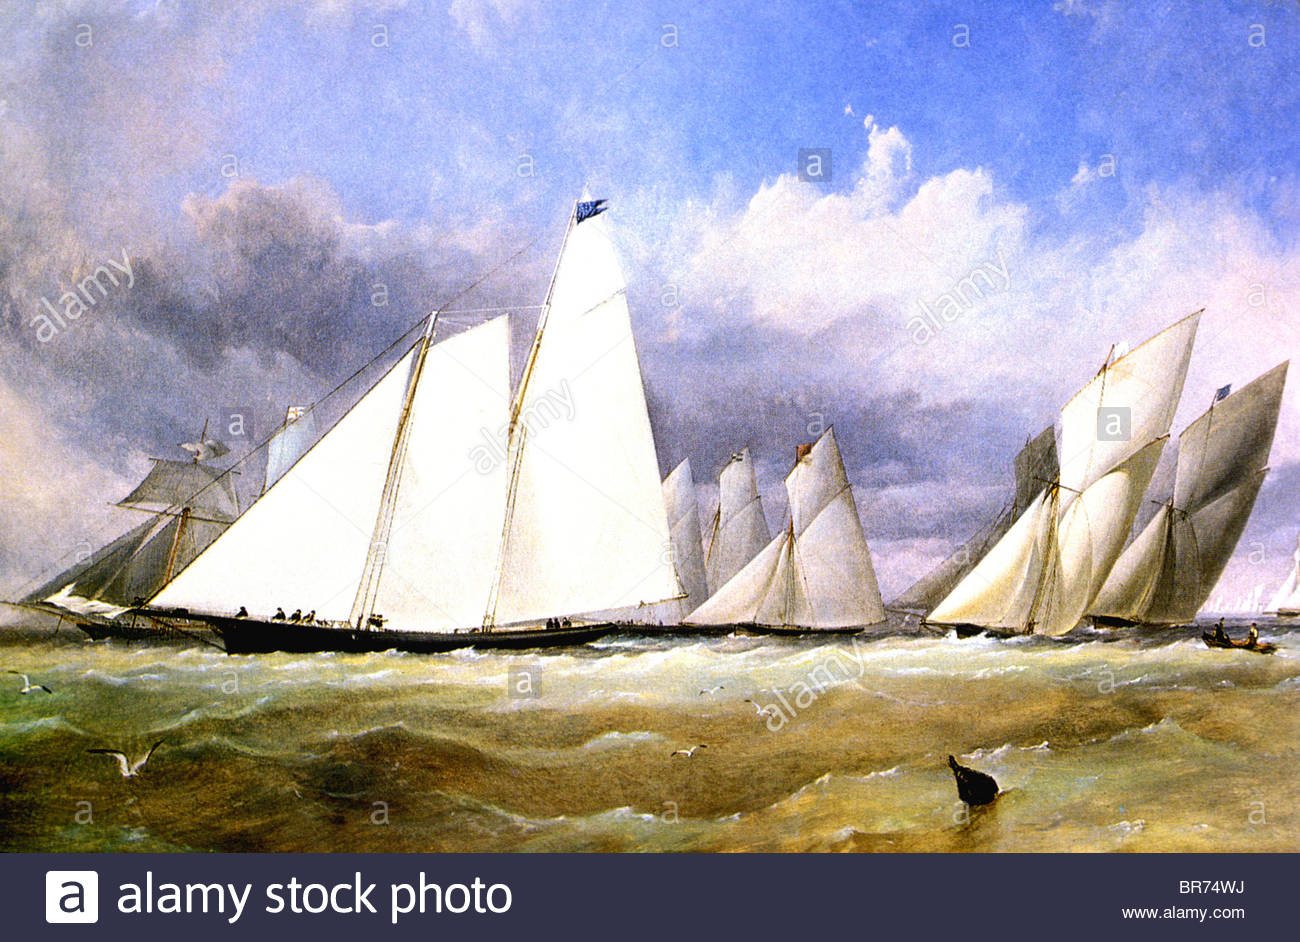 schooner-america-1851-race-by-thomas-sew